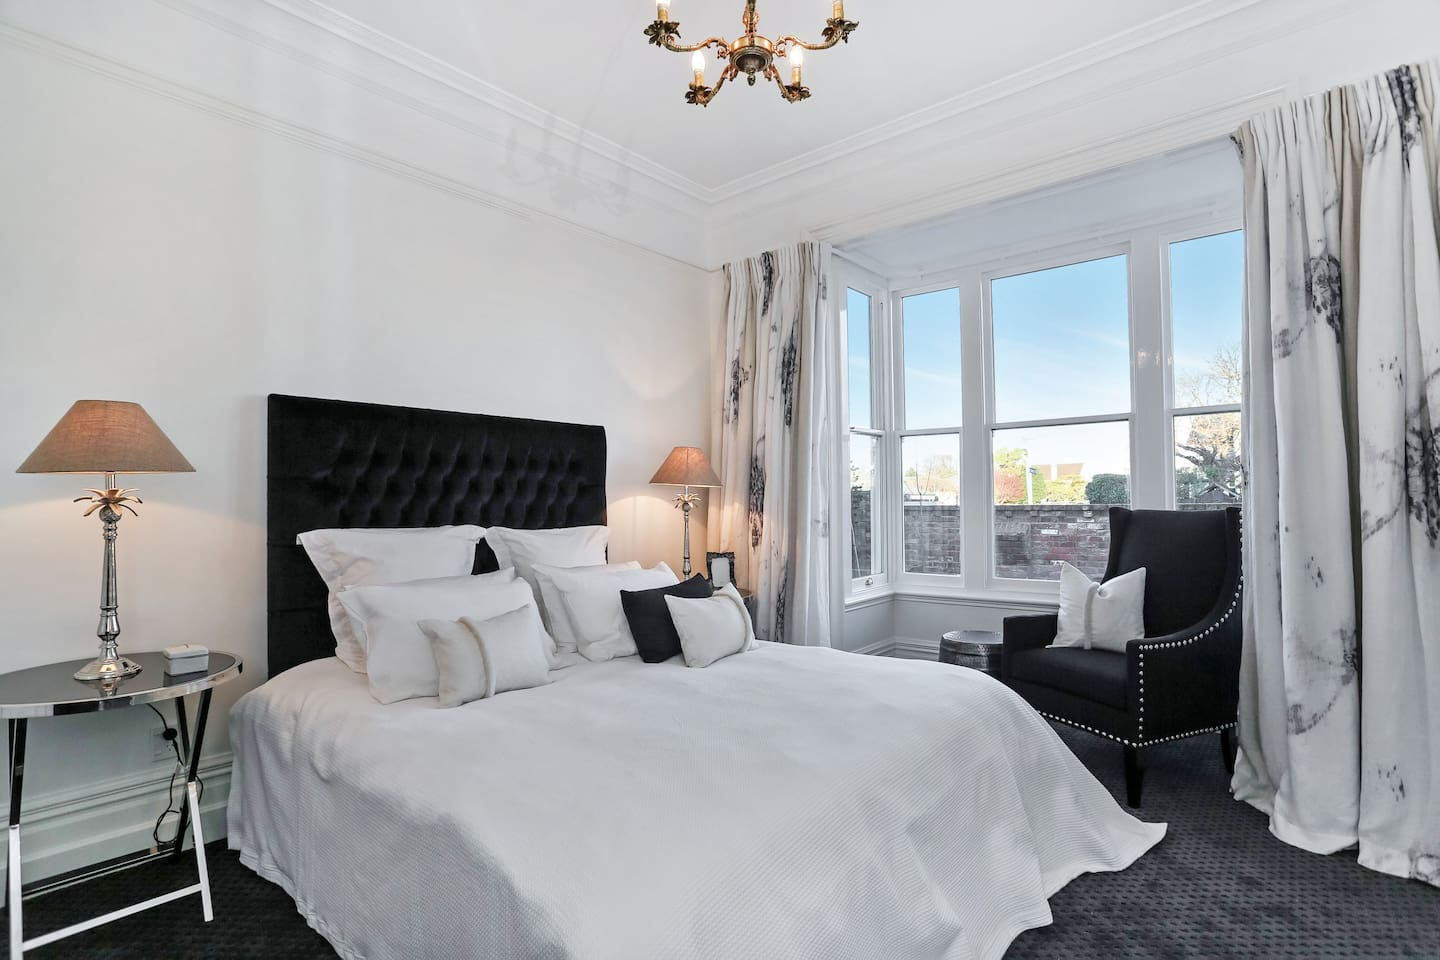 Beautiful newly decorated bedroom